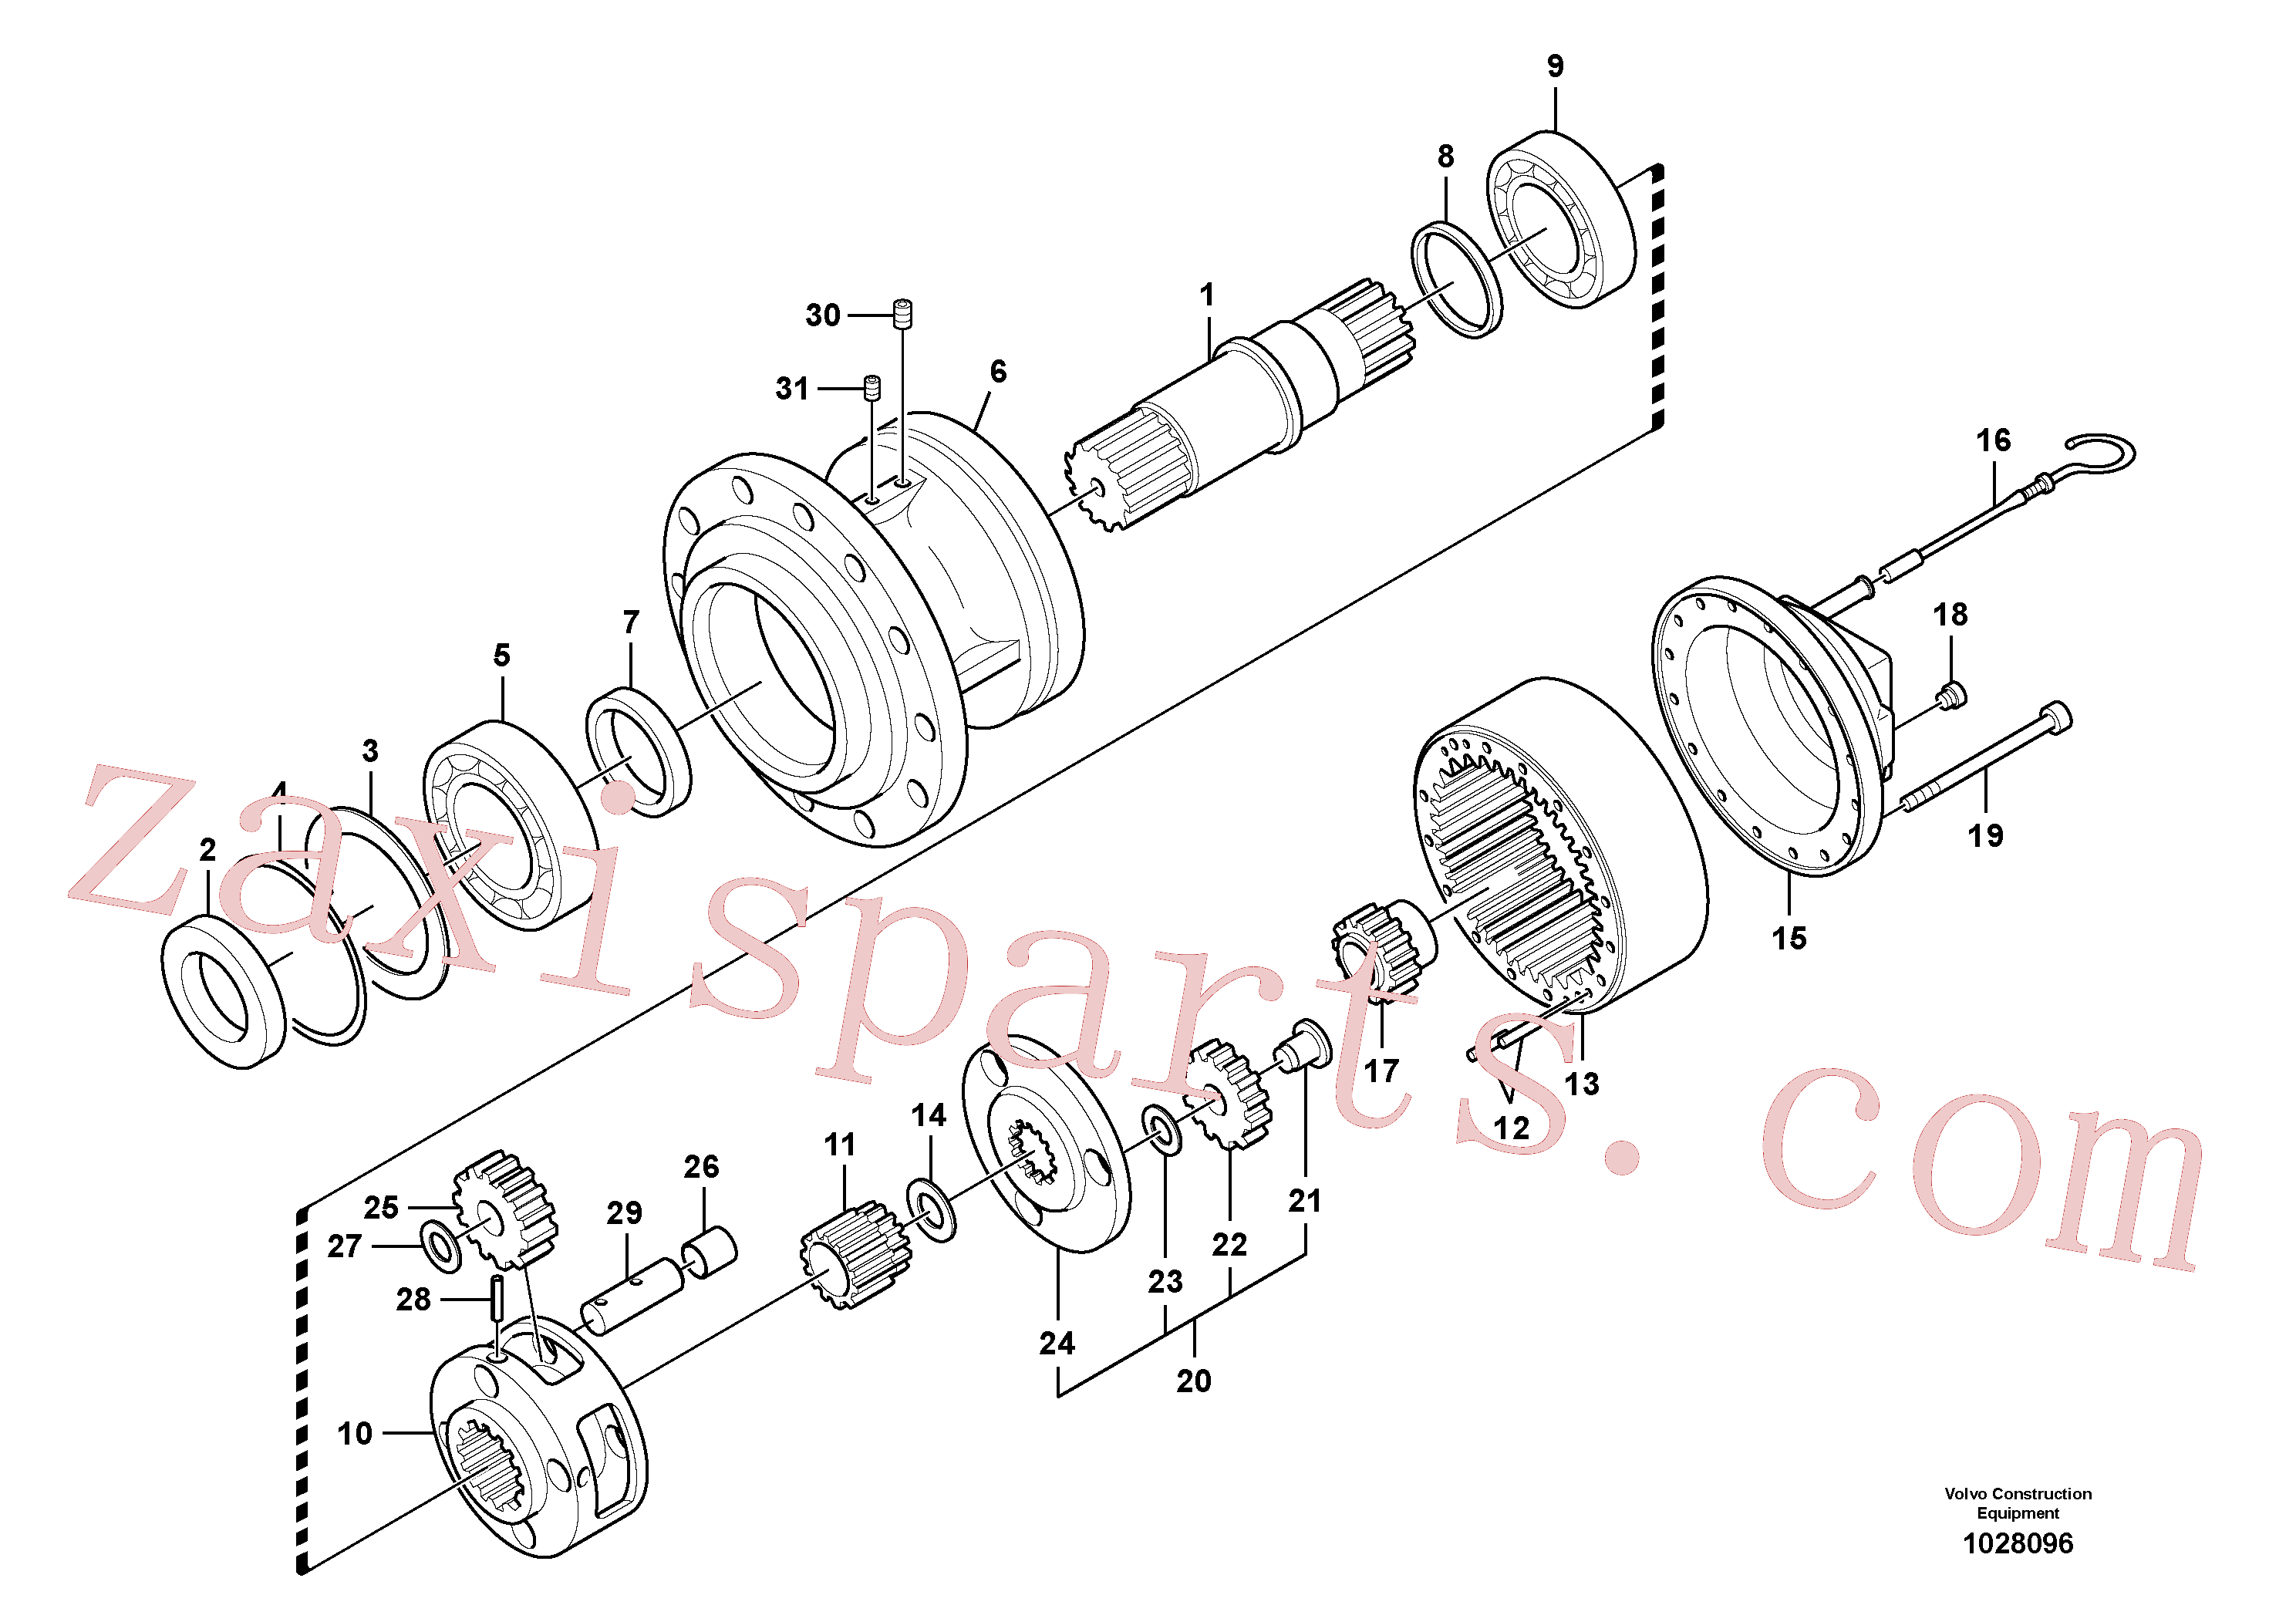 SA8230-22600 for Volvo Swing gearbox(1028096 assembly)